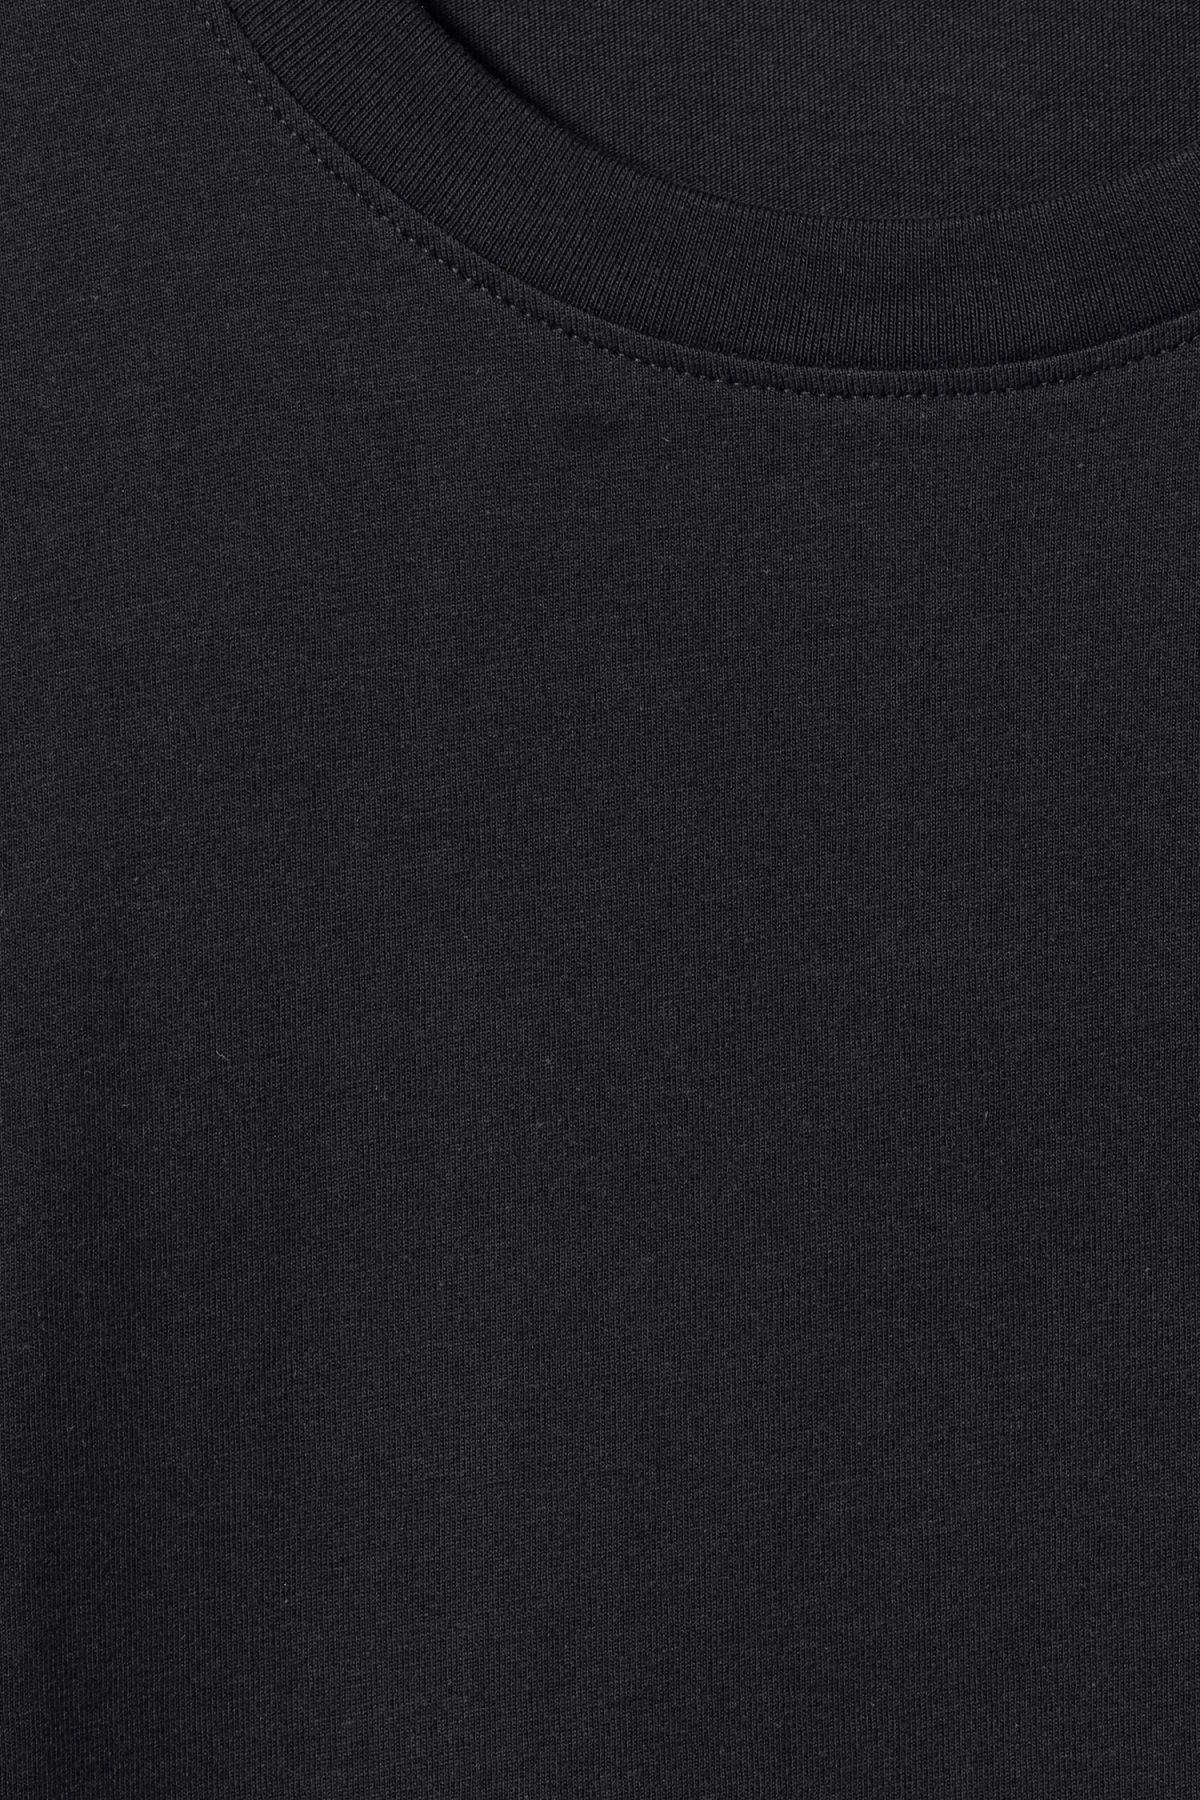 Detailed image of Weekday frank t-shirt in black